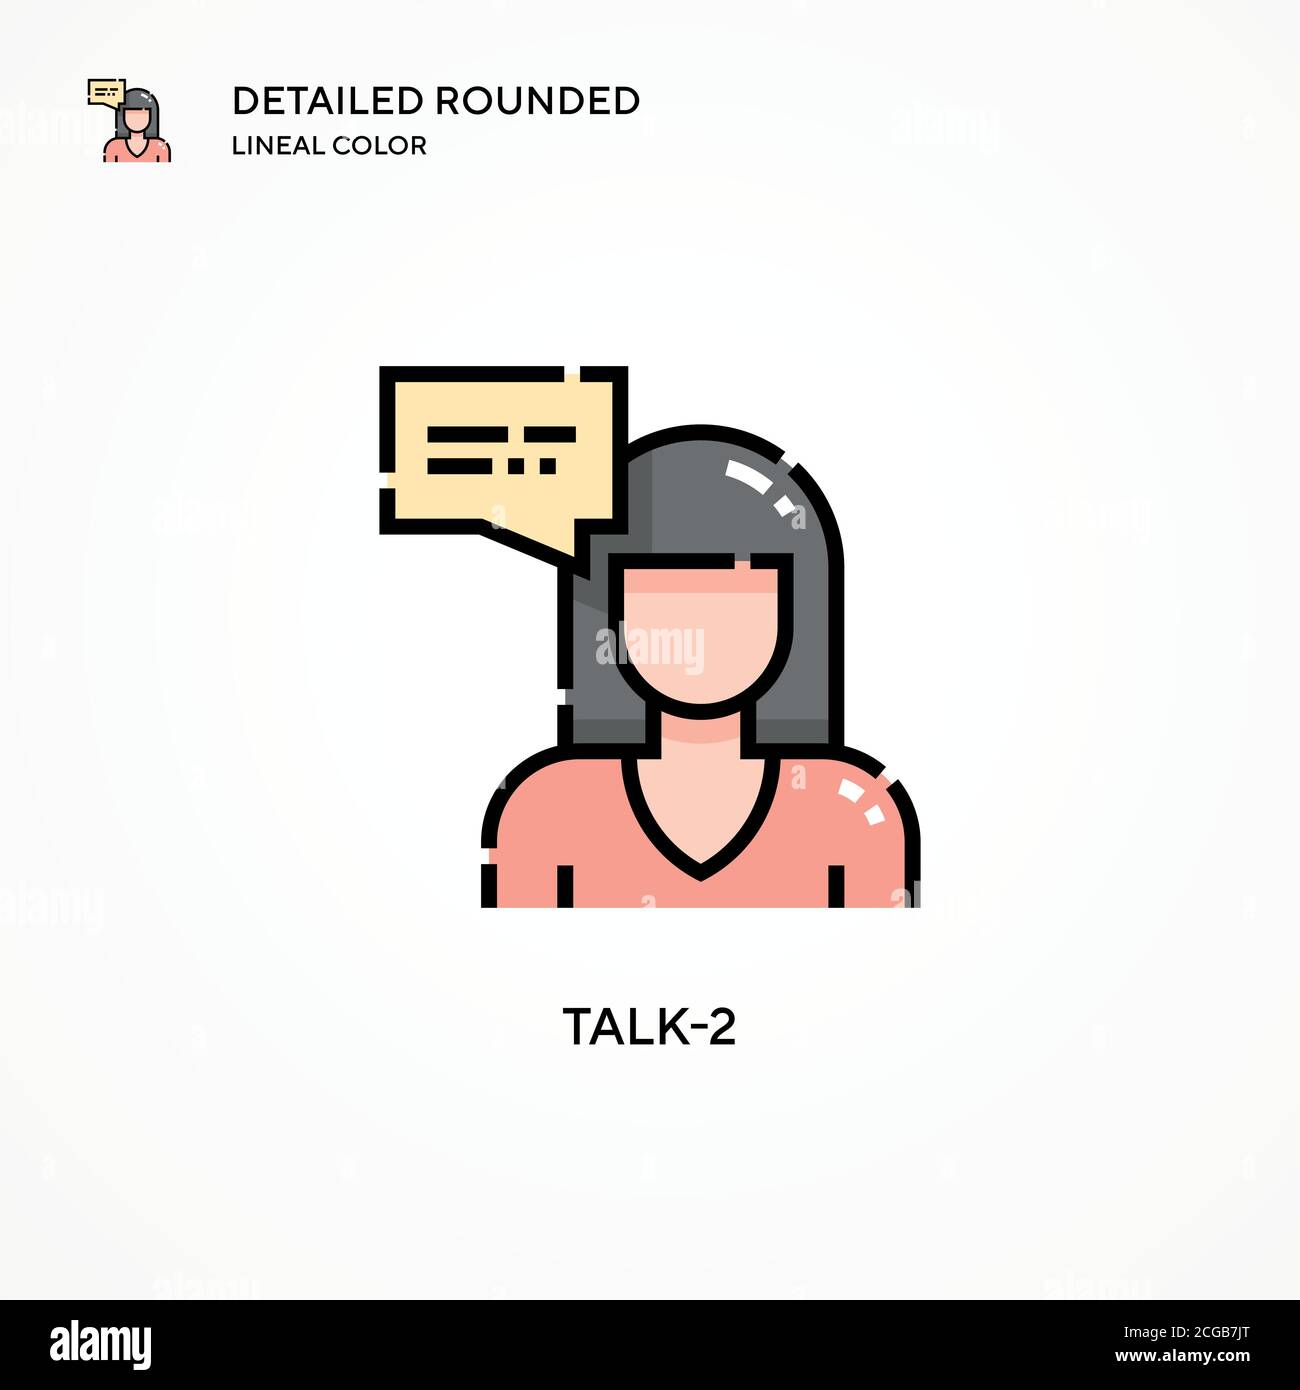 Talk-2 vector icon. Modern vector illustration concepts. Easy to edit and customize. Stock Vector